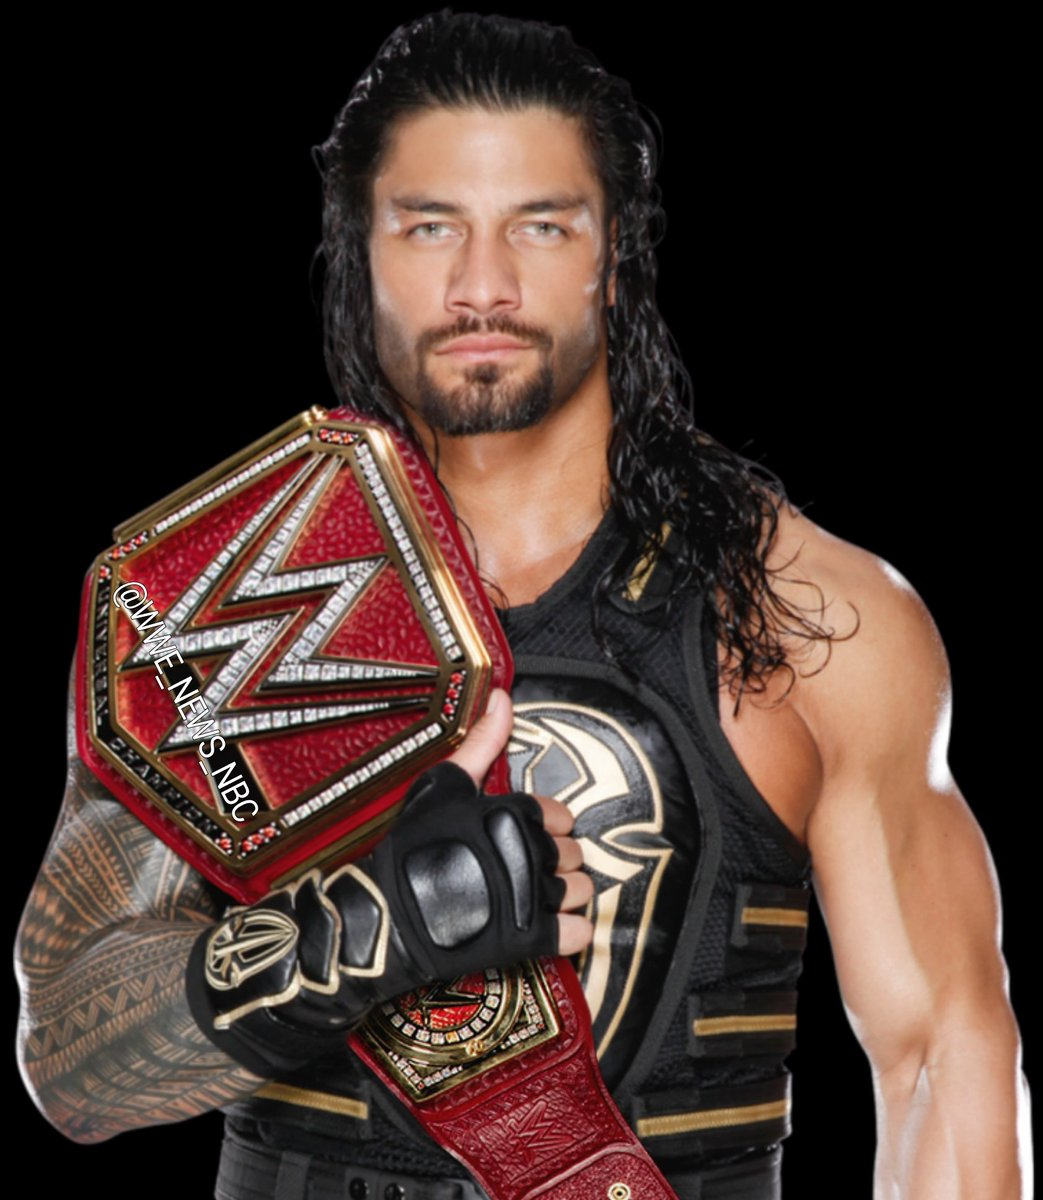 Who HAS BEEN the BEST UNIVERSAL CHAMPION to date? A. FINN BALOR B. KEVIN OWENS C. GOLDBERG D. BROCK LESNAR E. ROMAN REIGNS F. SETH ROLLINS #WWE